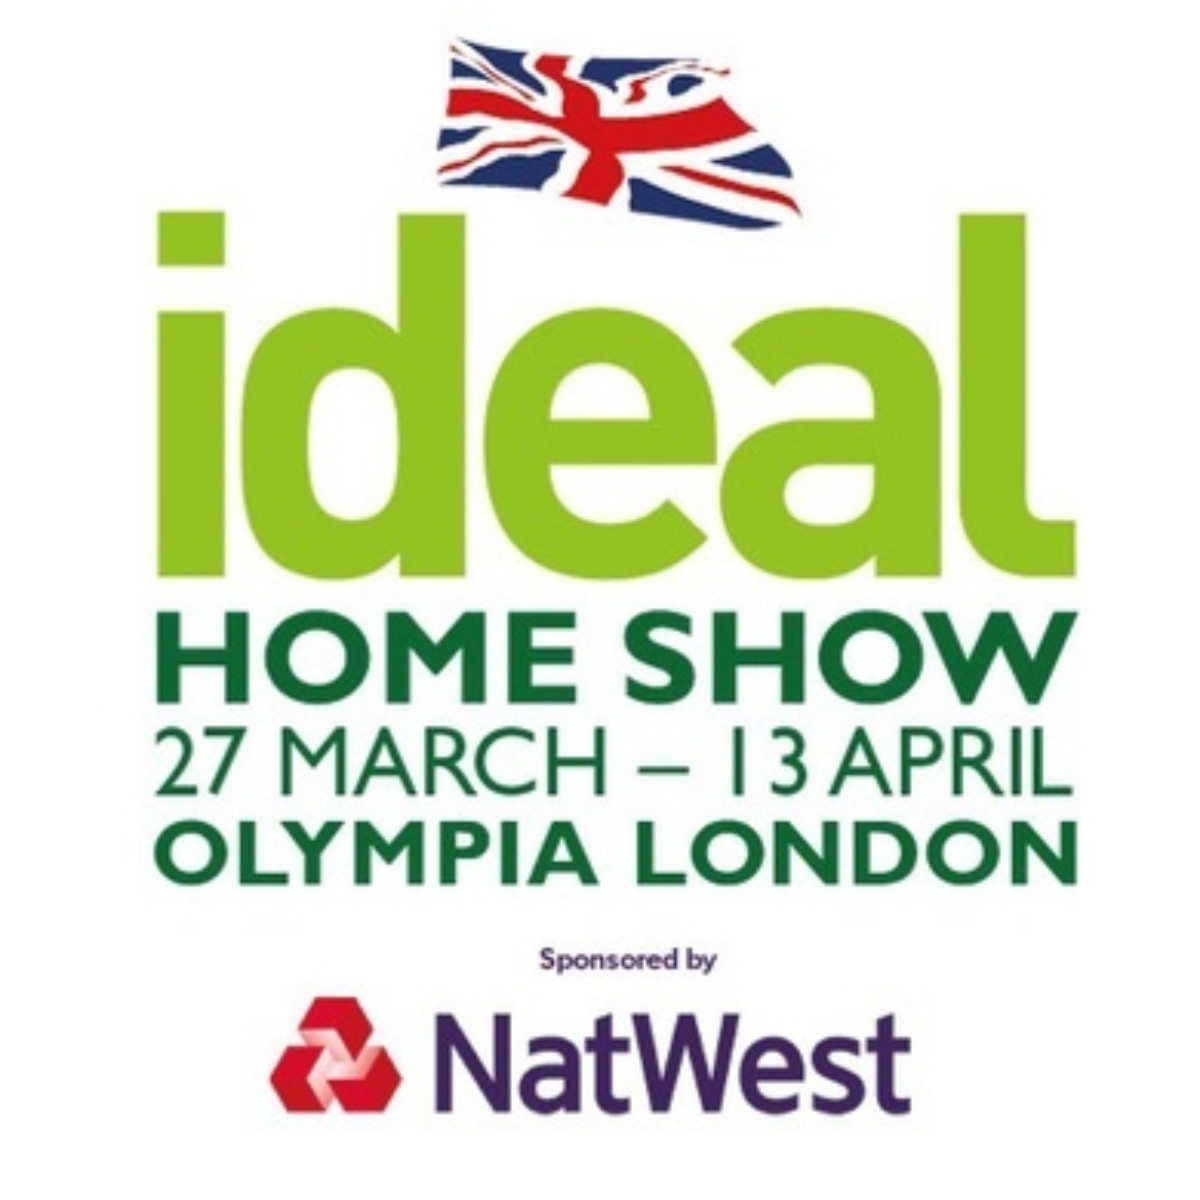 Ideal Home Show sponsored by NatWest Images